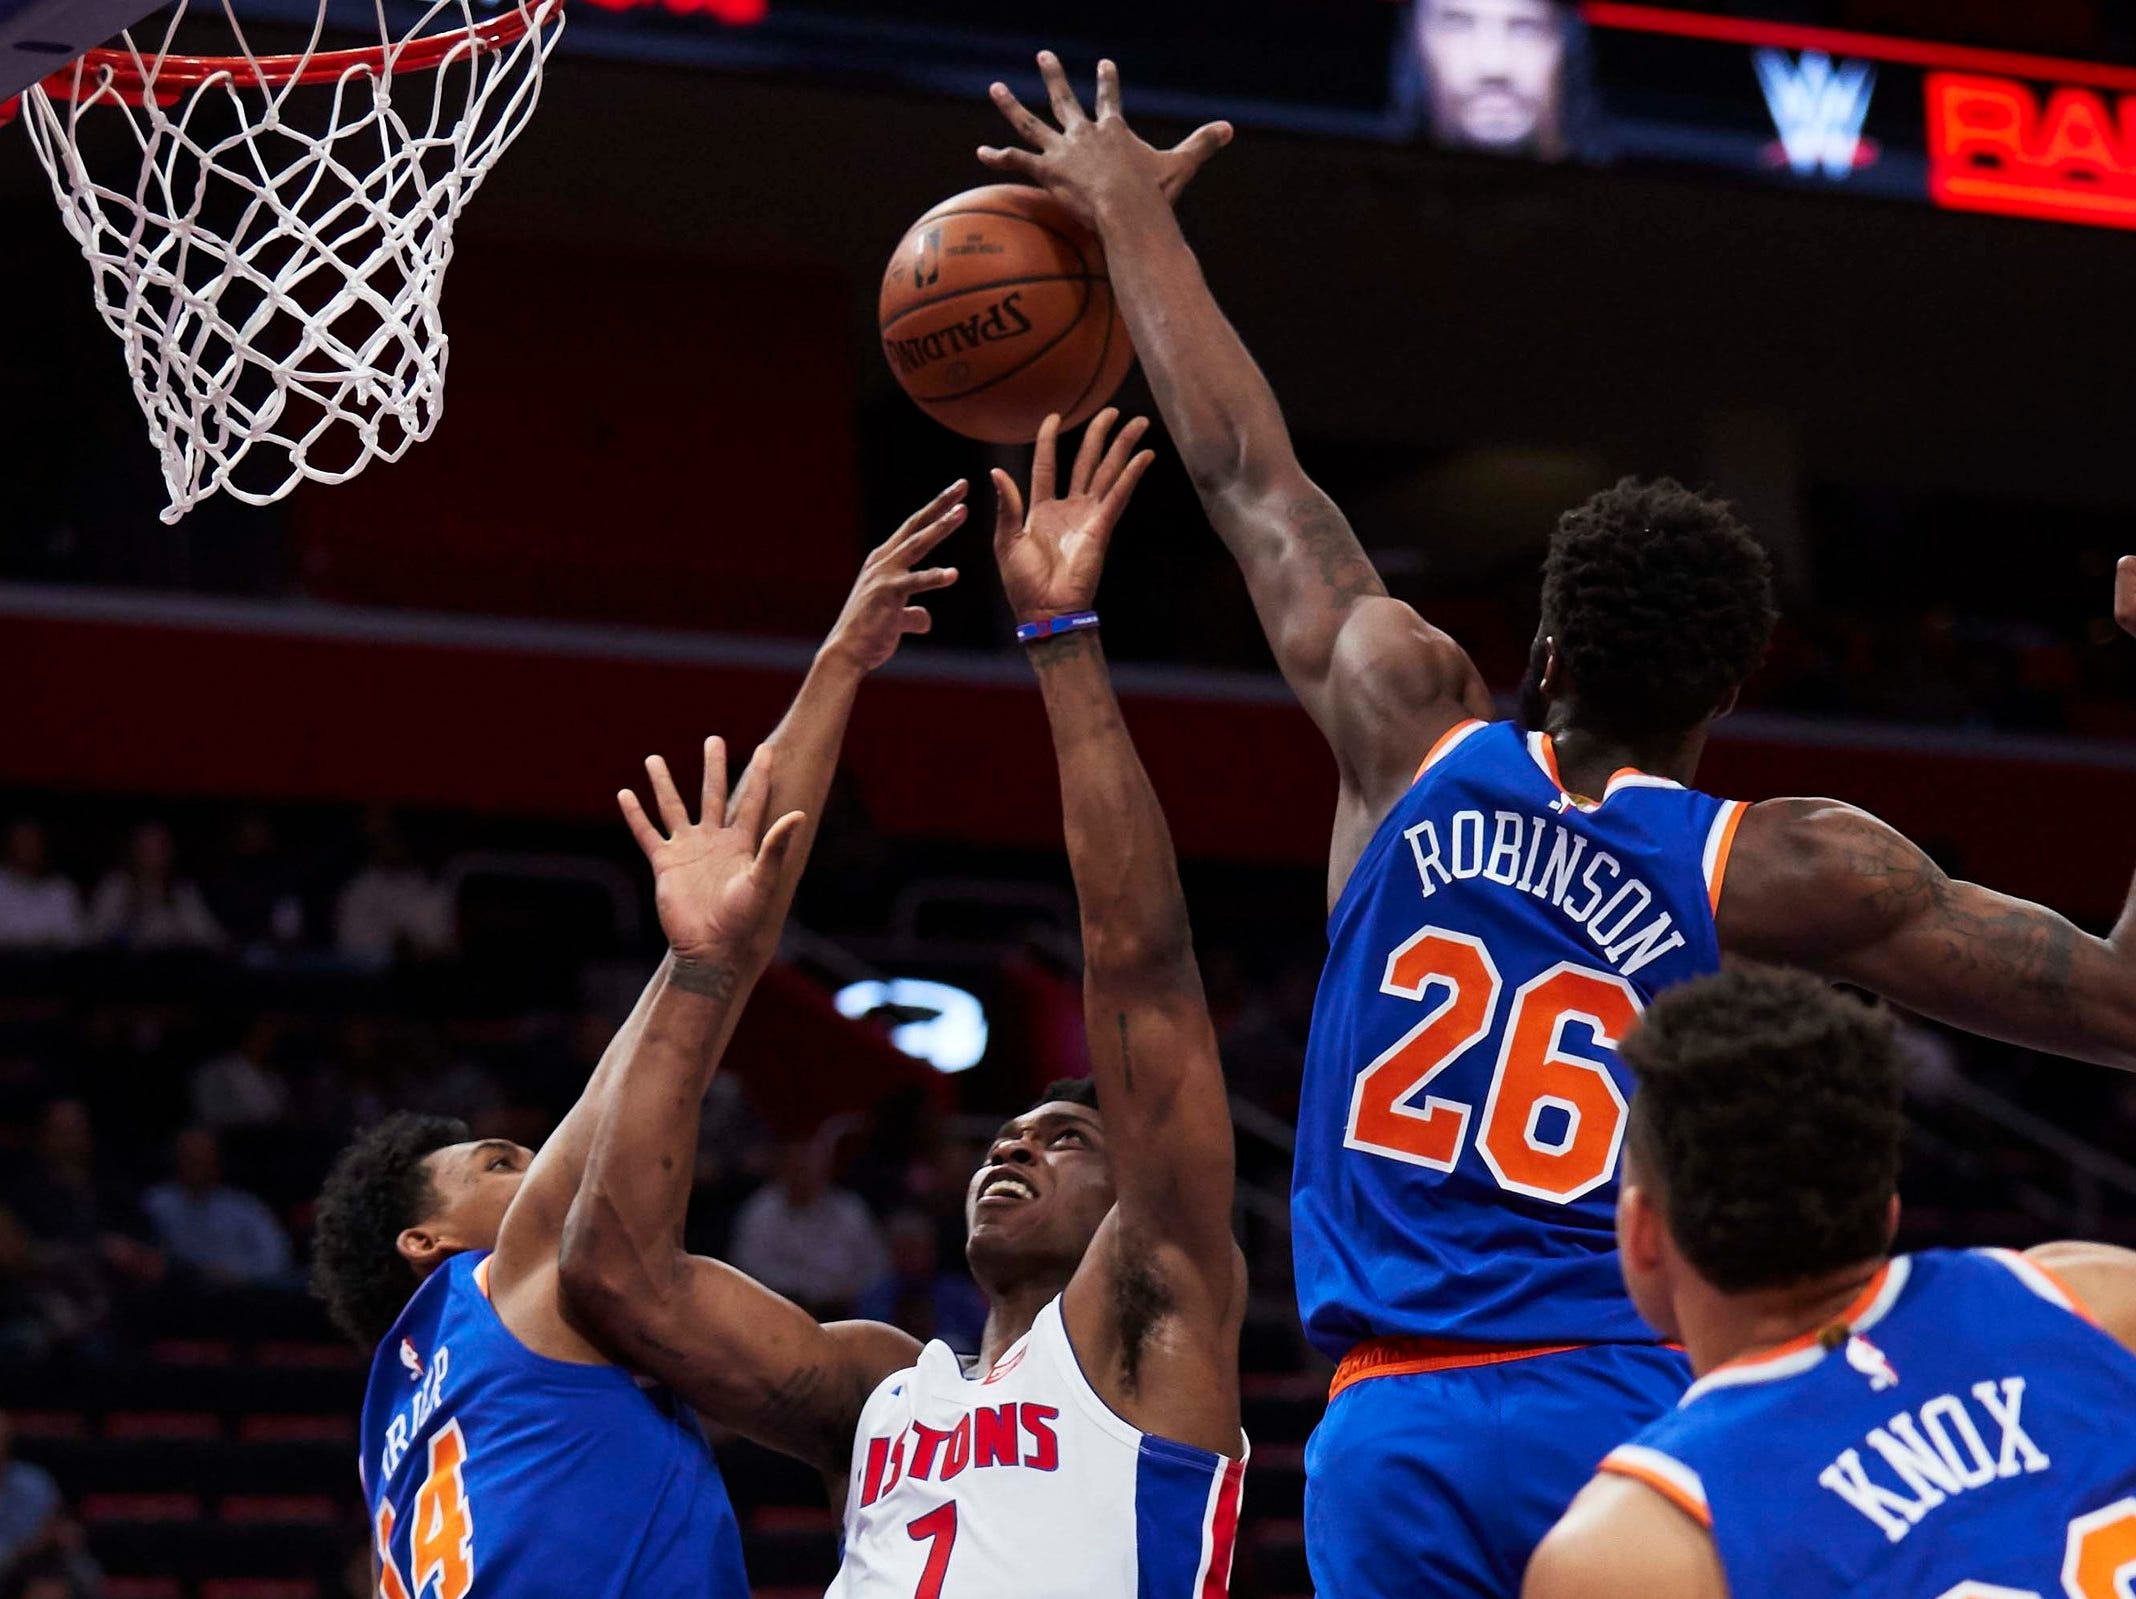 New York Knicks center Mitchell Robinson (26) blocks a shot by Detroit Pistons forward Stanley Johnson (7) in the first half at Little Caesars Arena.